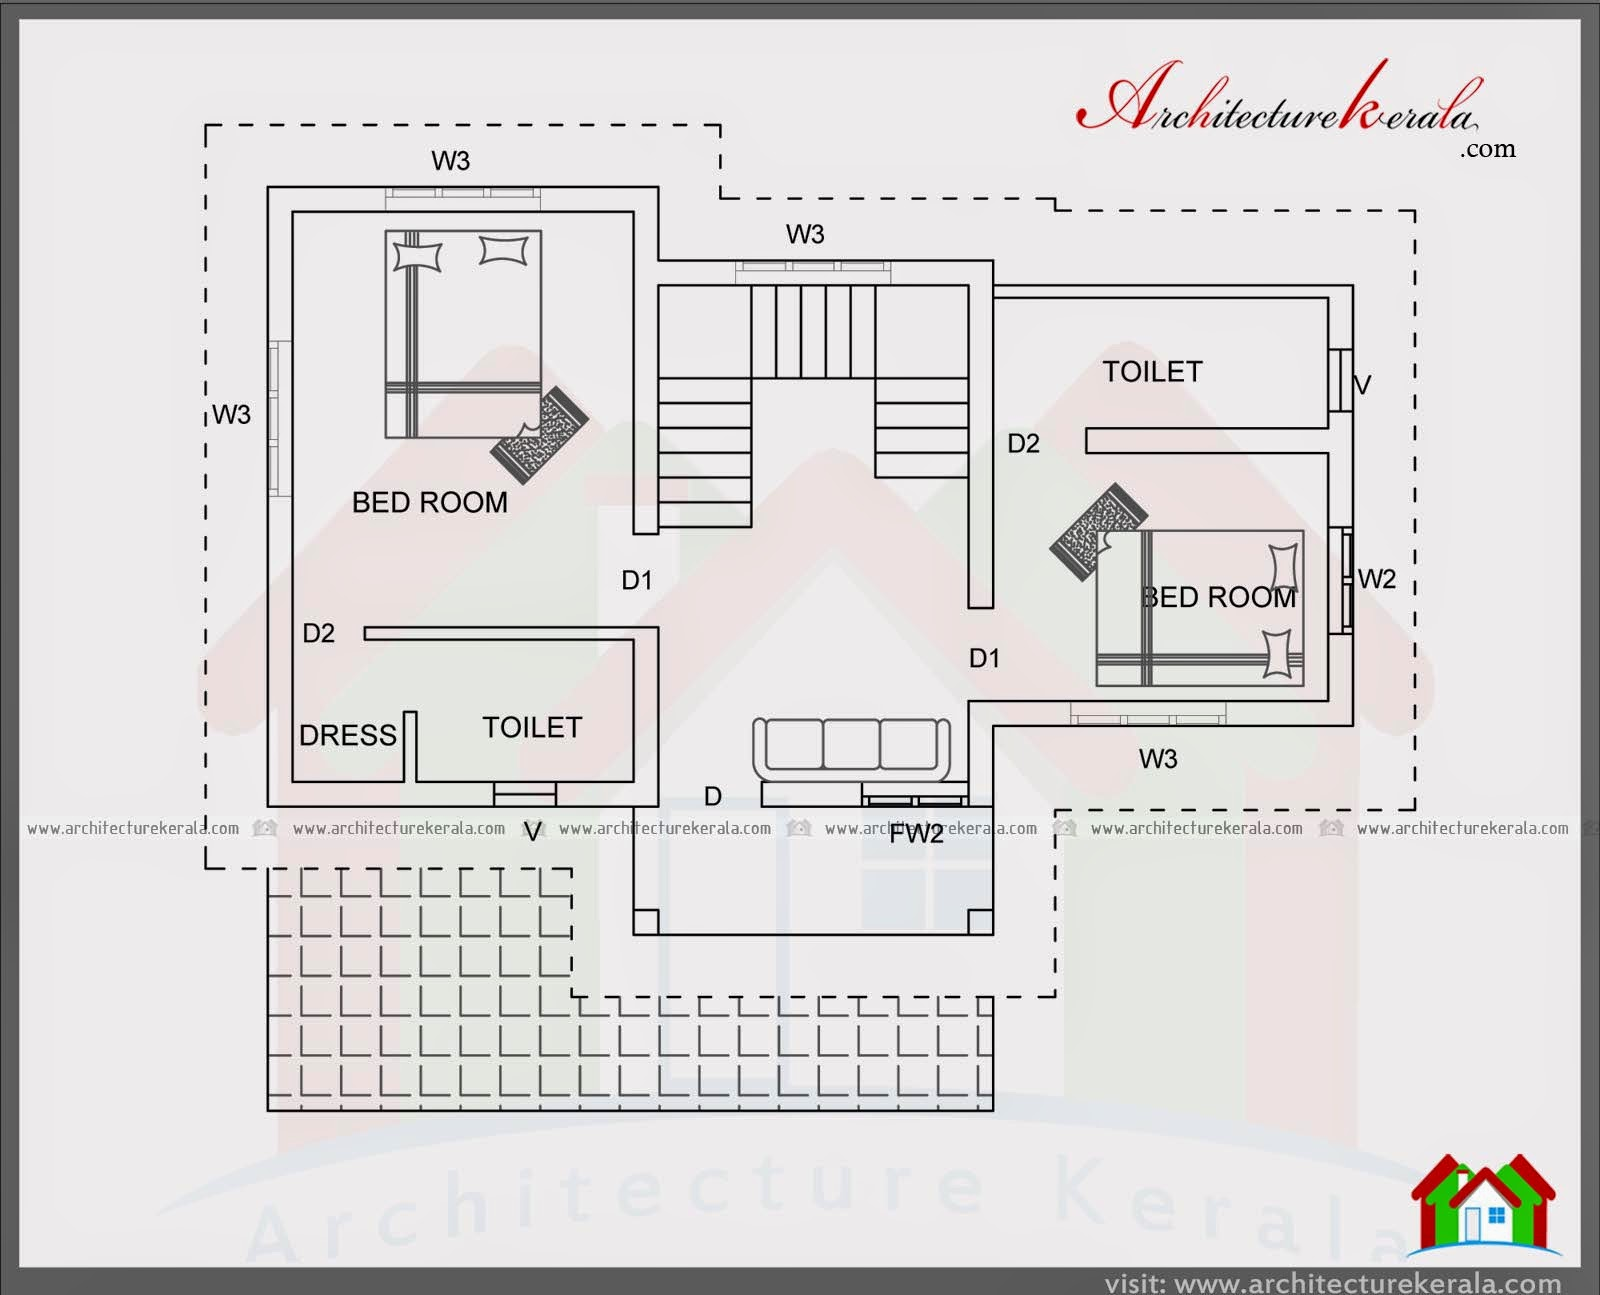 1000 Sq Ft House Plans 3 Bedroom In Kerala Duplex Apartment. 800 Sq Ft House Plans 3 Bedroom Kerala Style   Bedroom Style Ideas